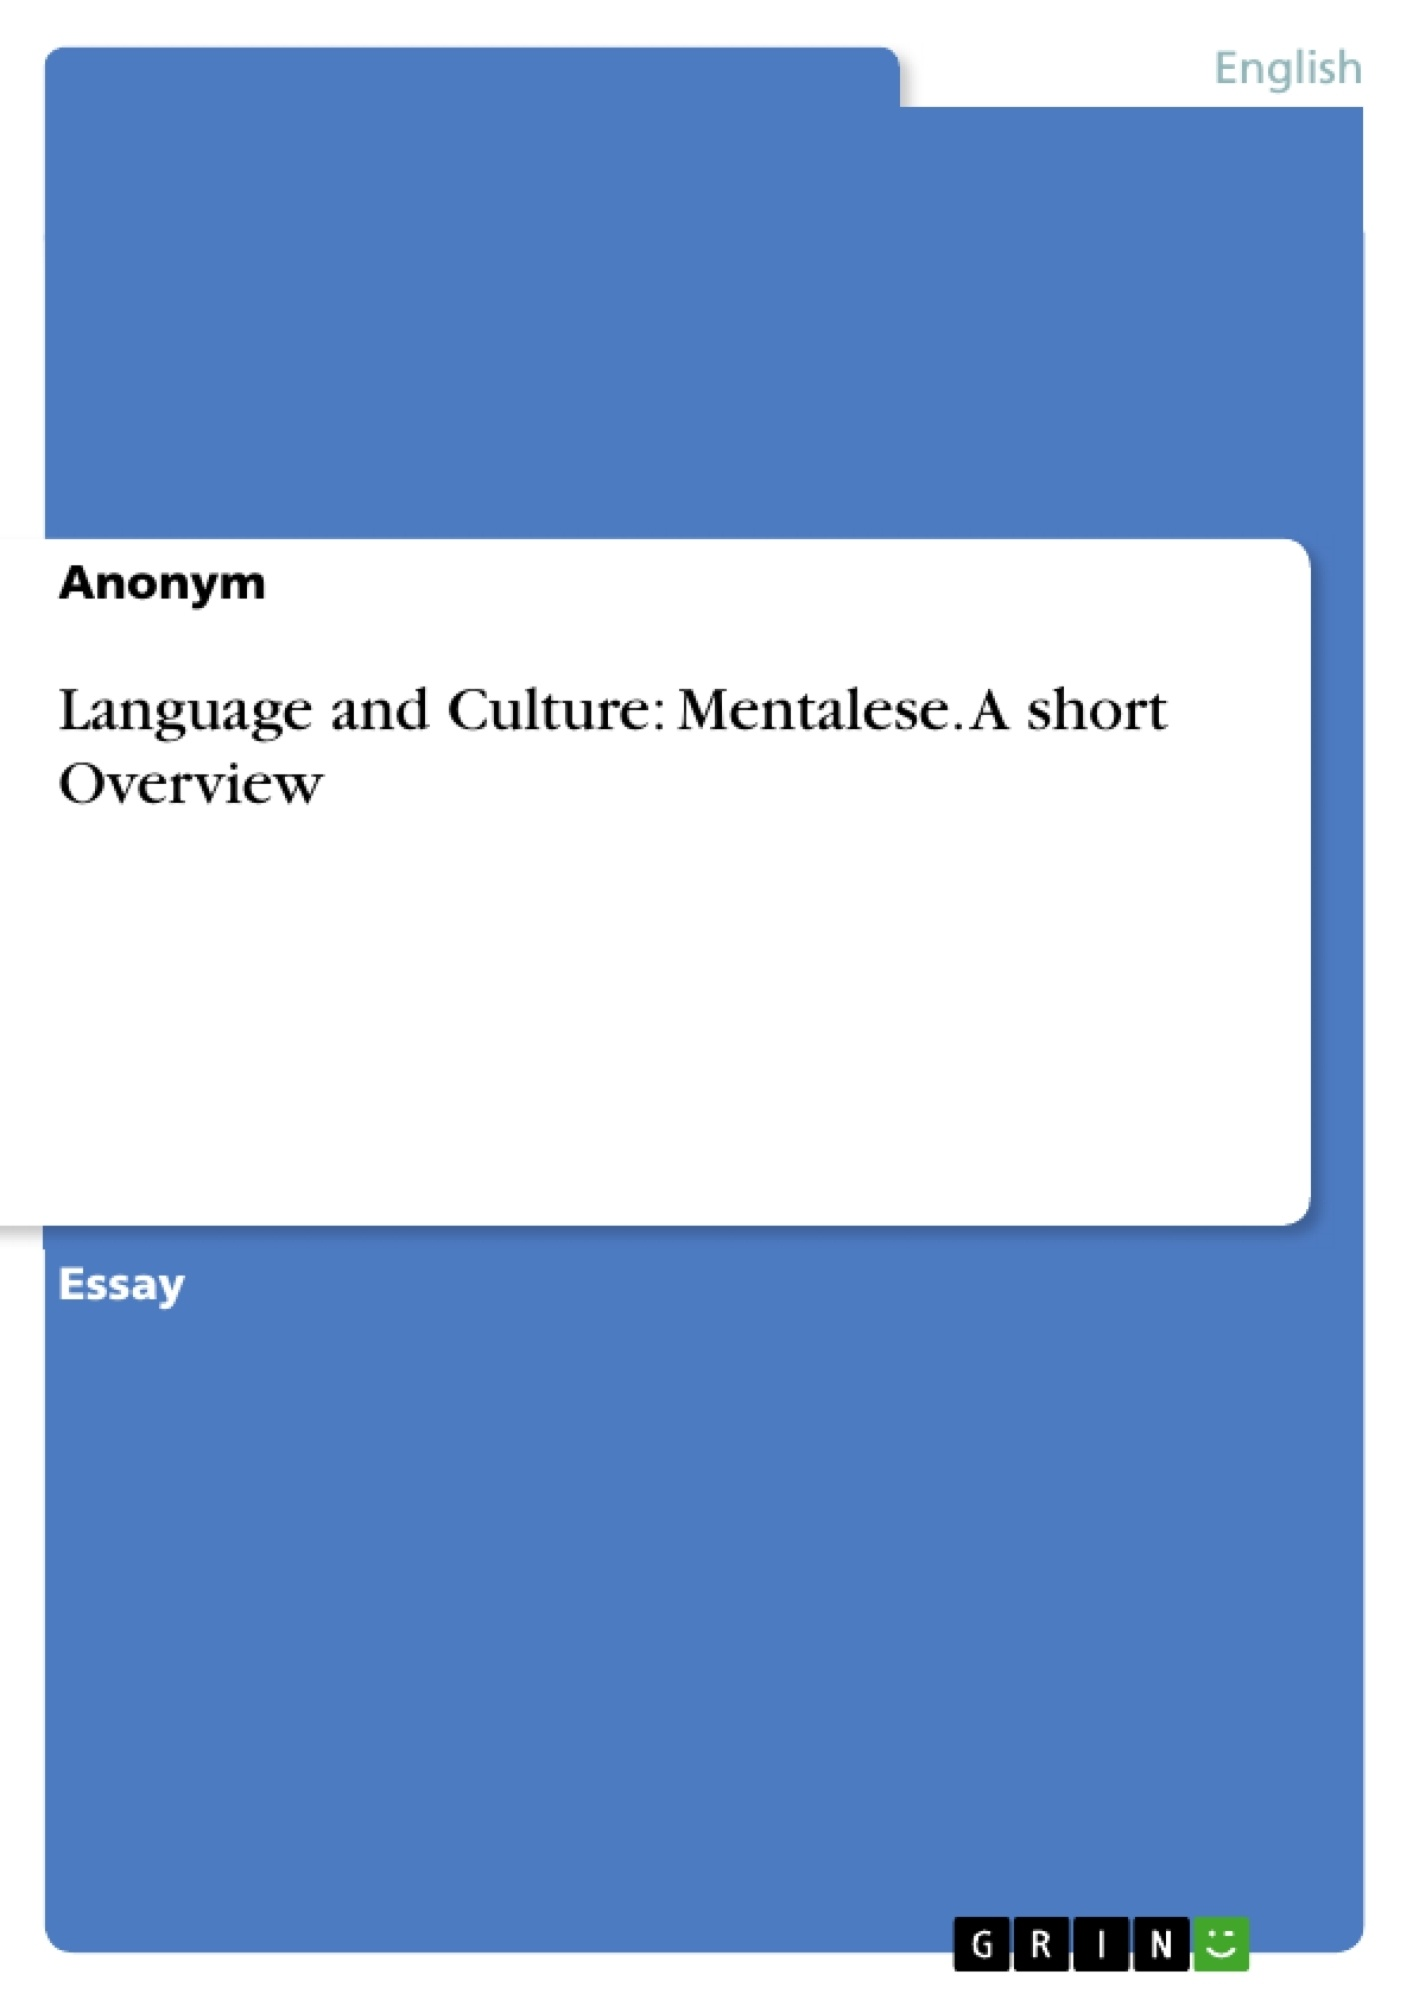 Title: Language and Culture: Mentalese. A short Overview